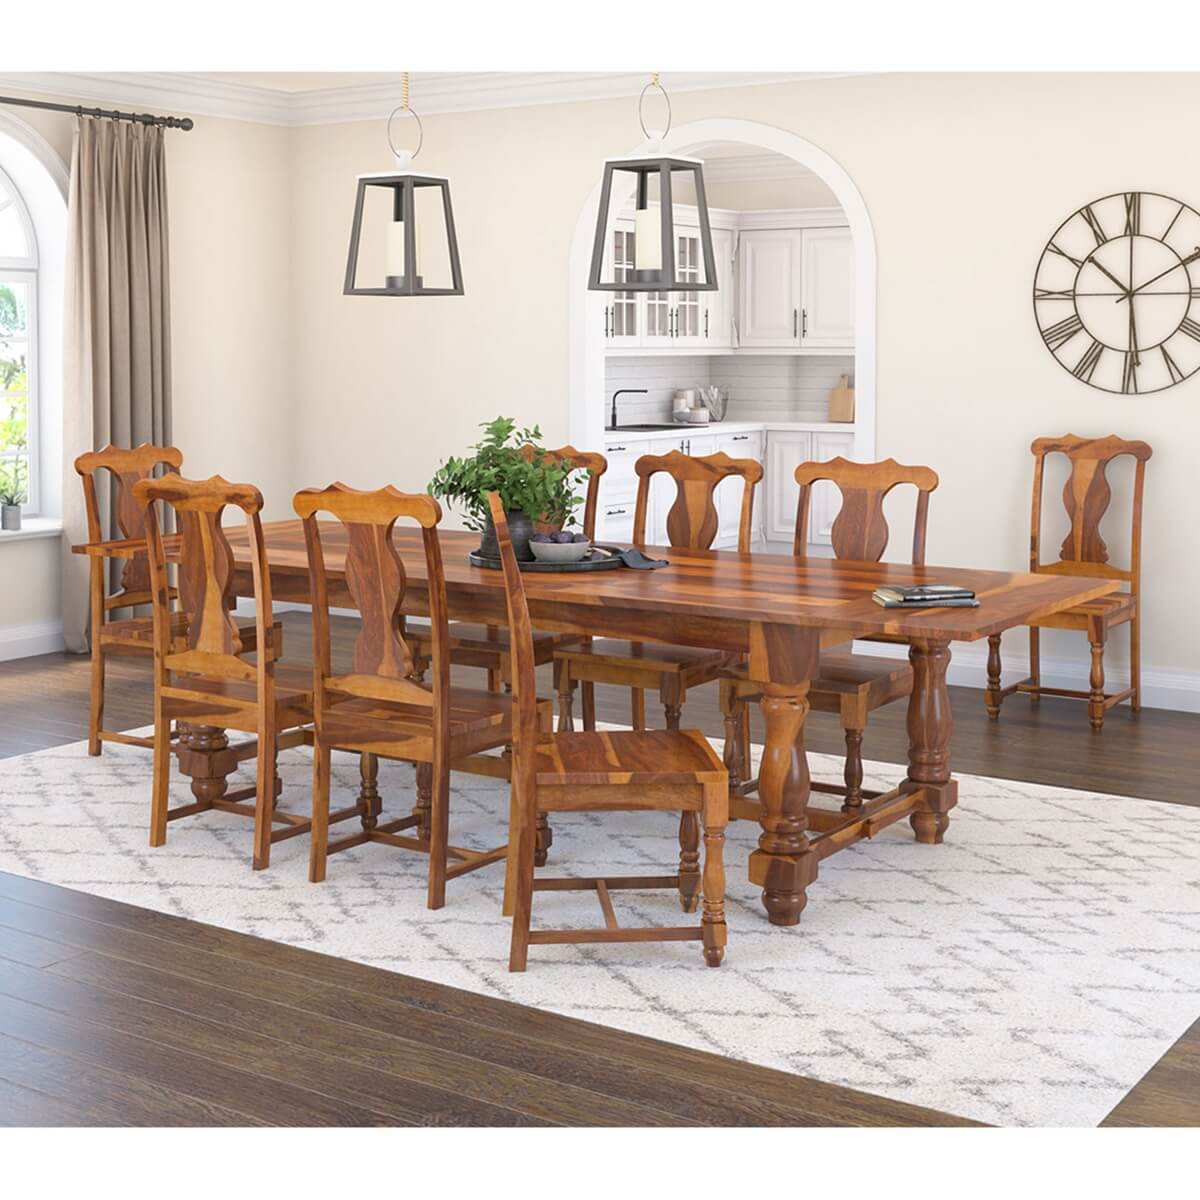 Oroville Rustic Solid Wood Extendable Dining Table Chair Set Furniture With Regard To Best And Newest Rustic Mahogany Extending Dining Tables (View 11 of 25)